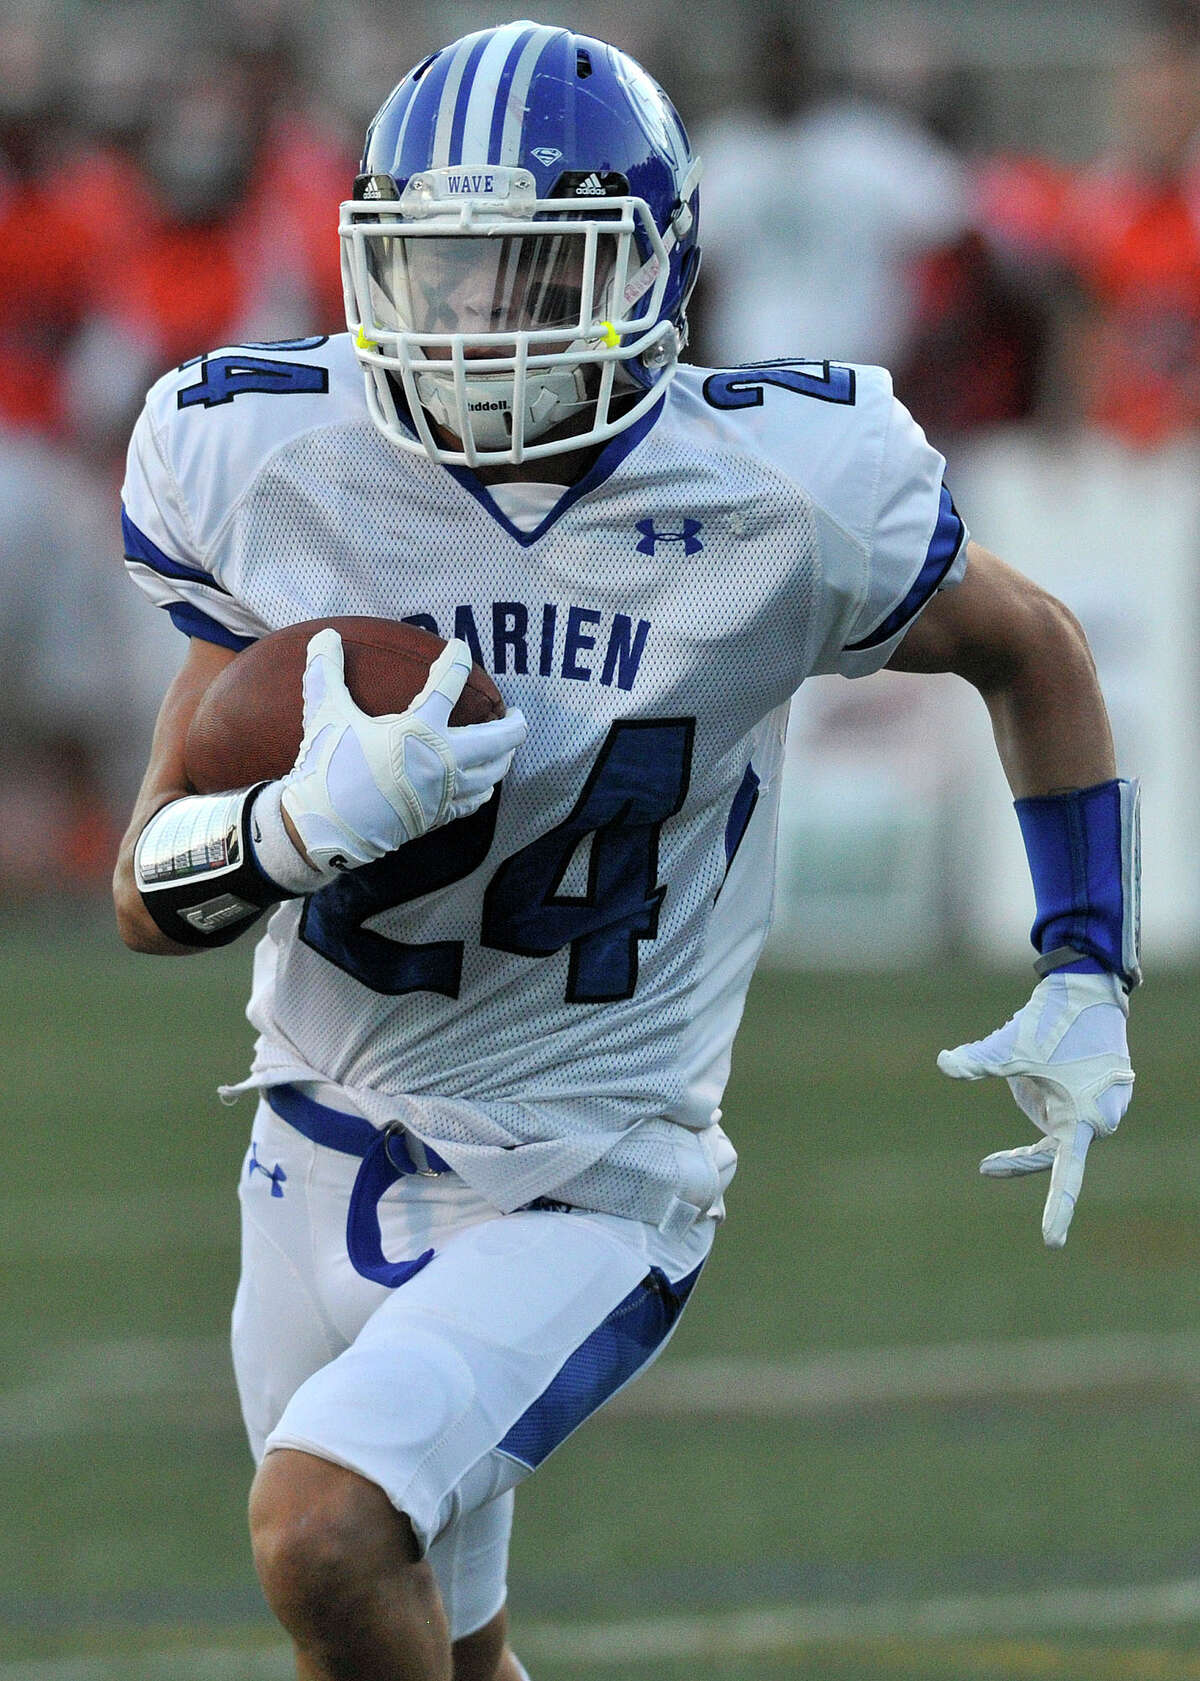 Christian Trifone is one of the stars in the defensive backfield for Darien.